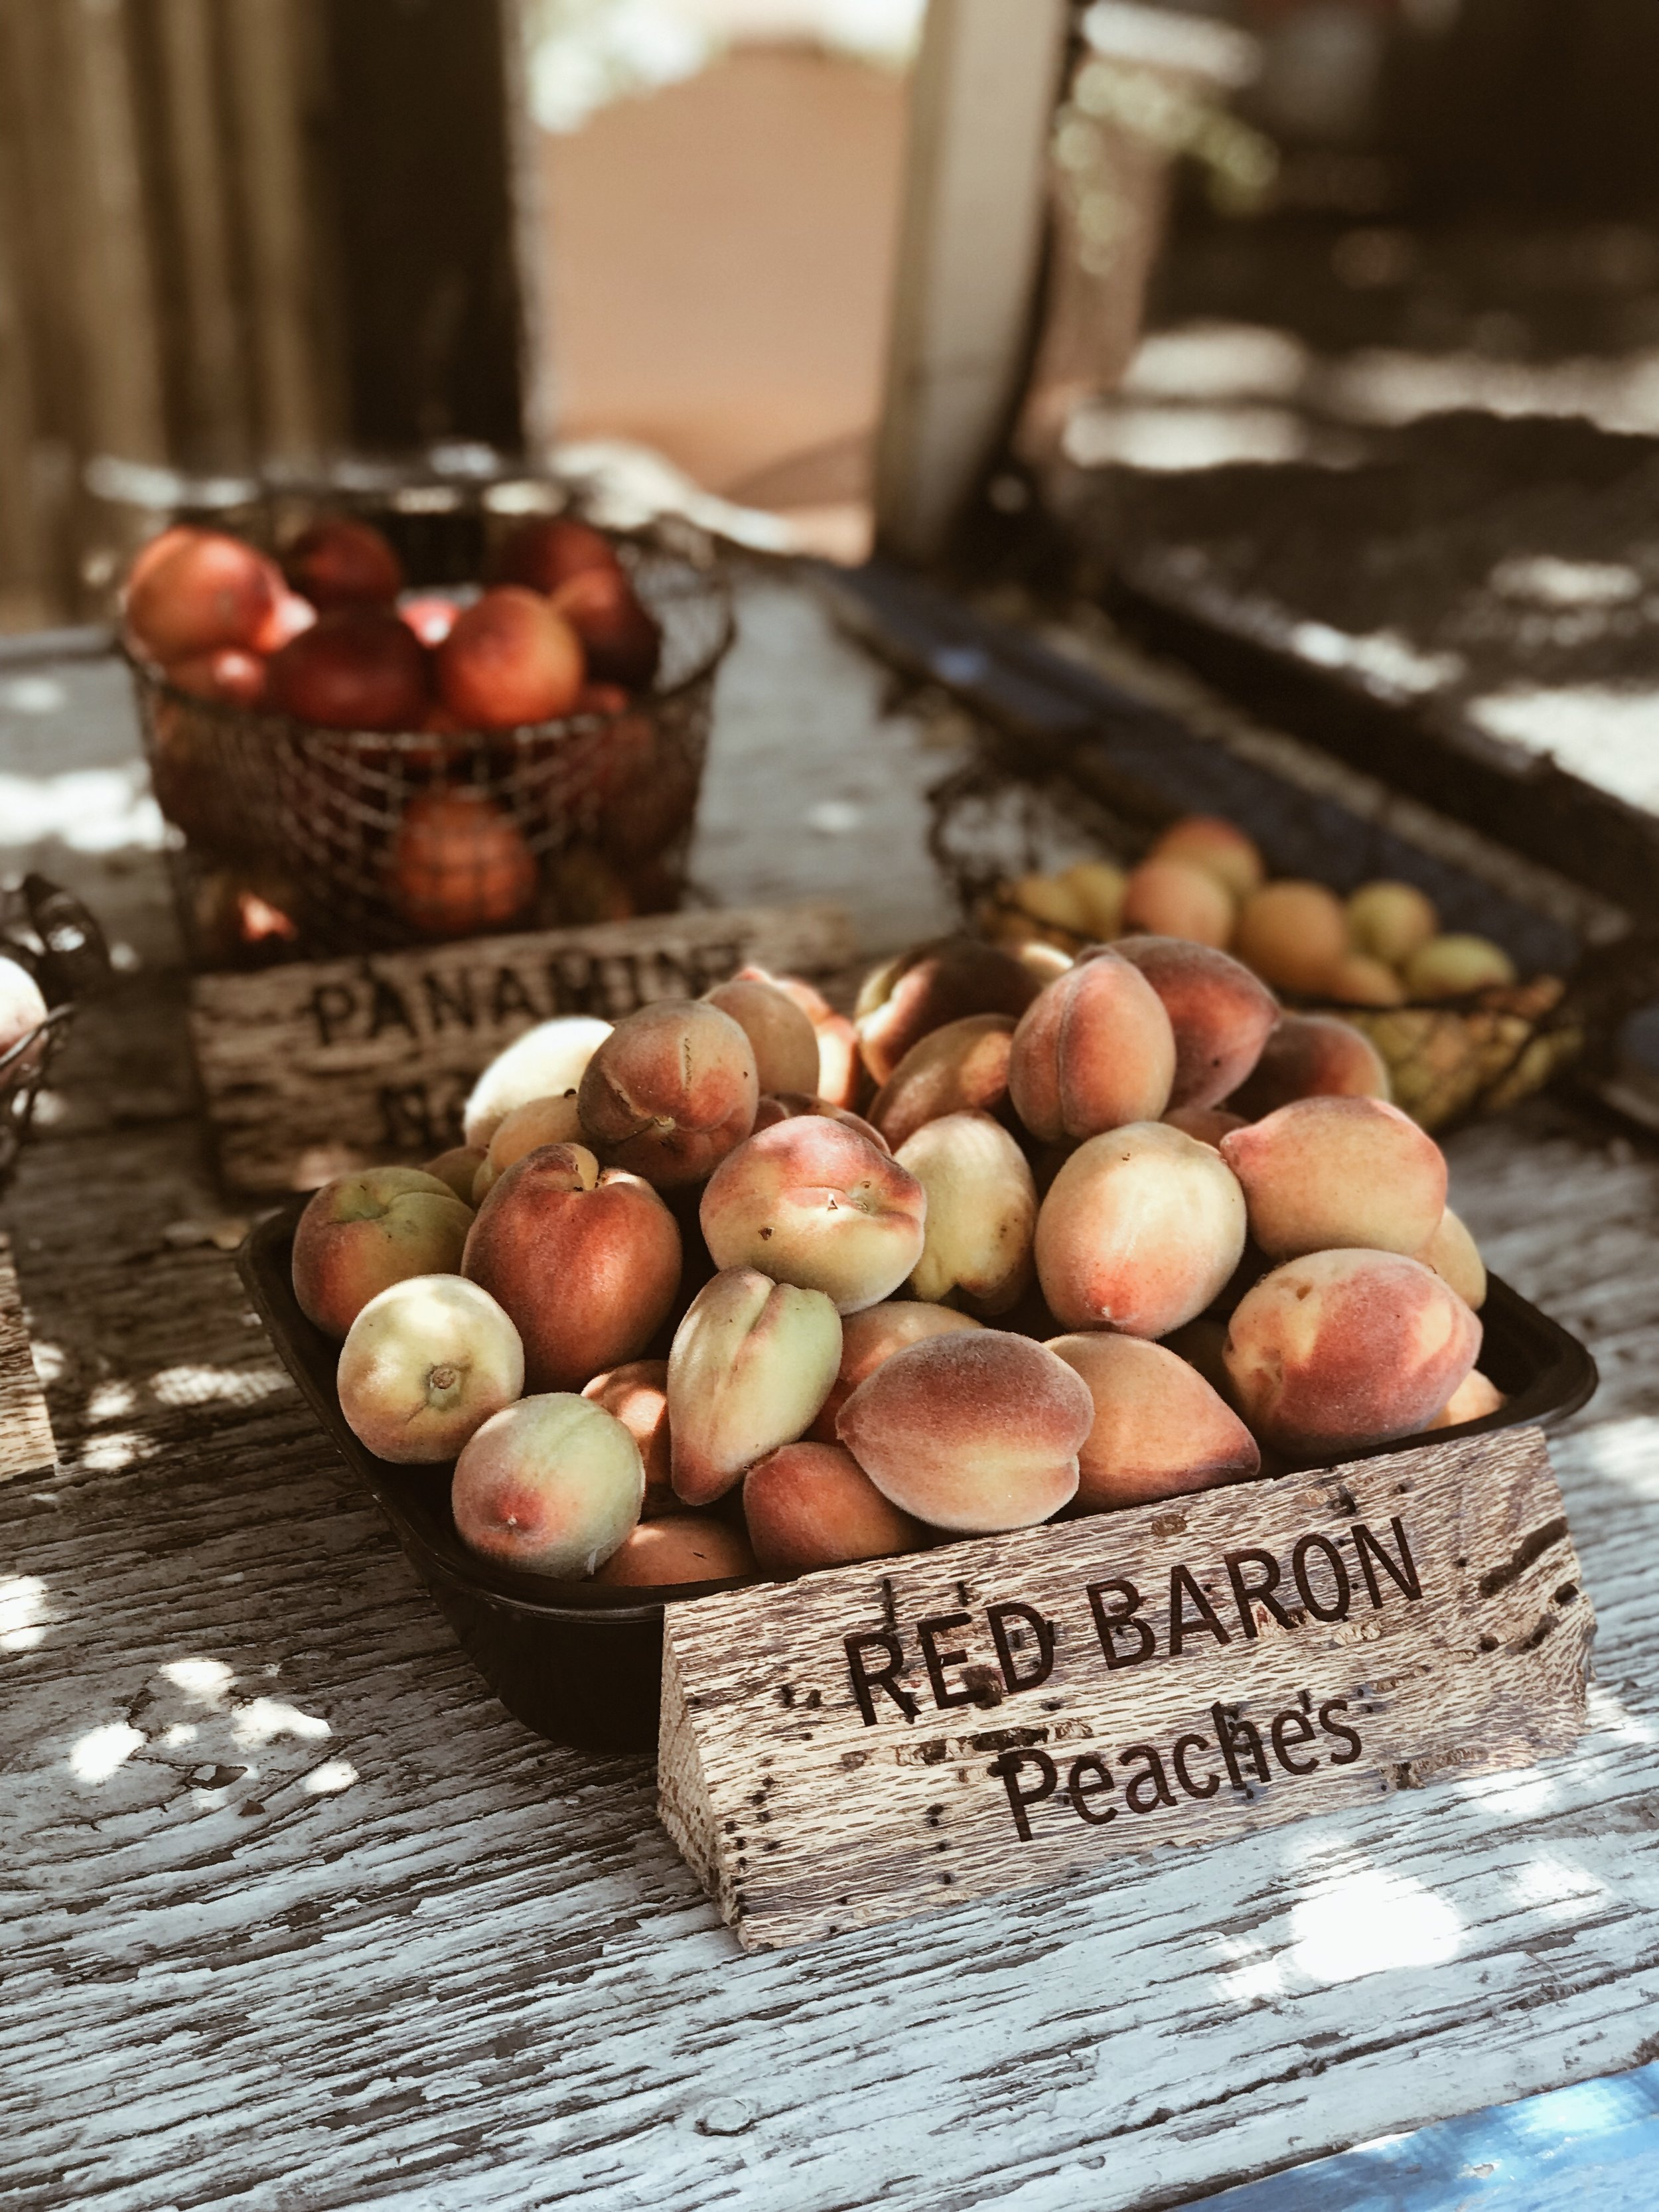 Picking up fresh peaches at a roadside stand